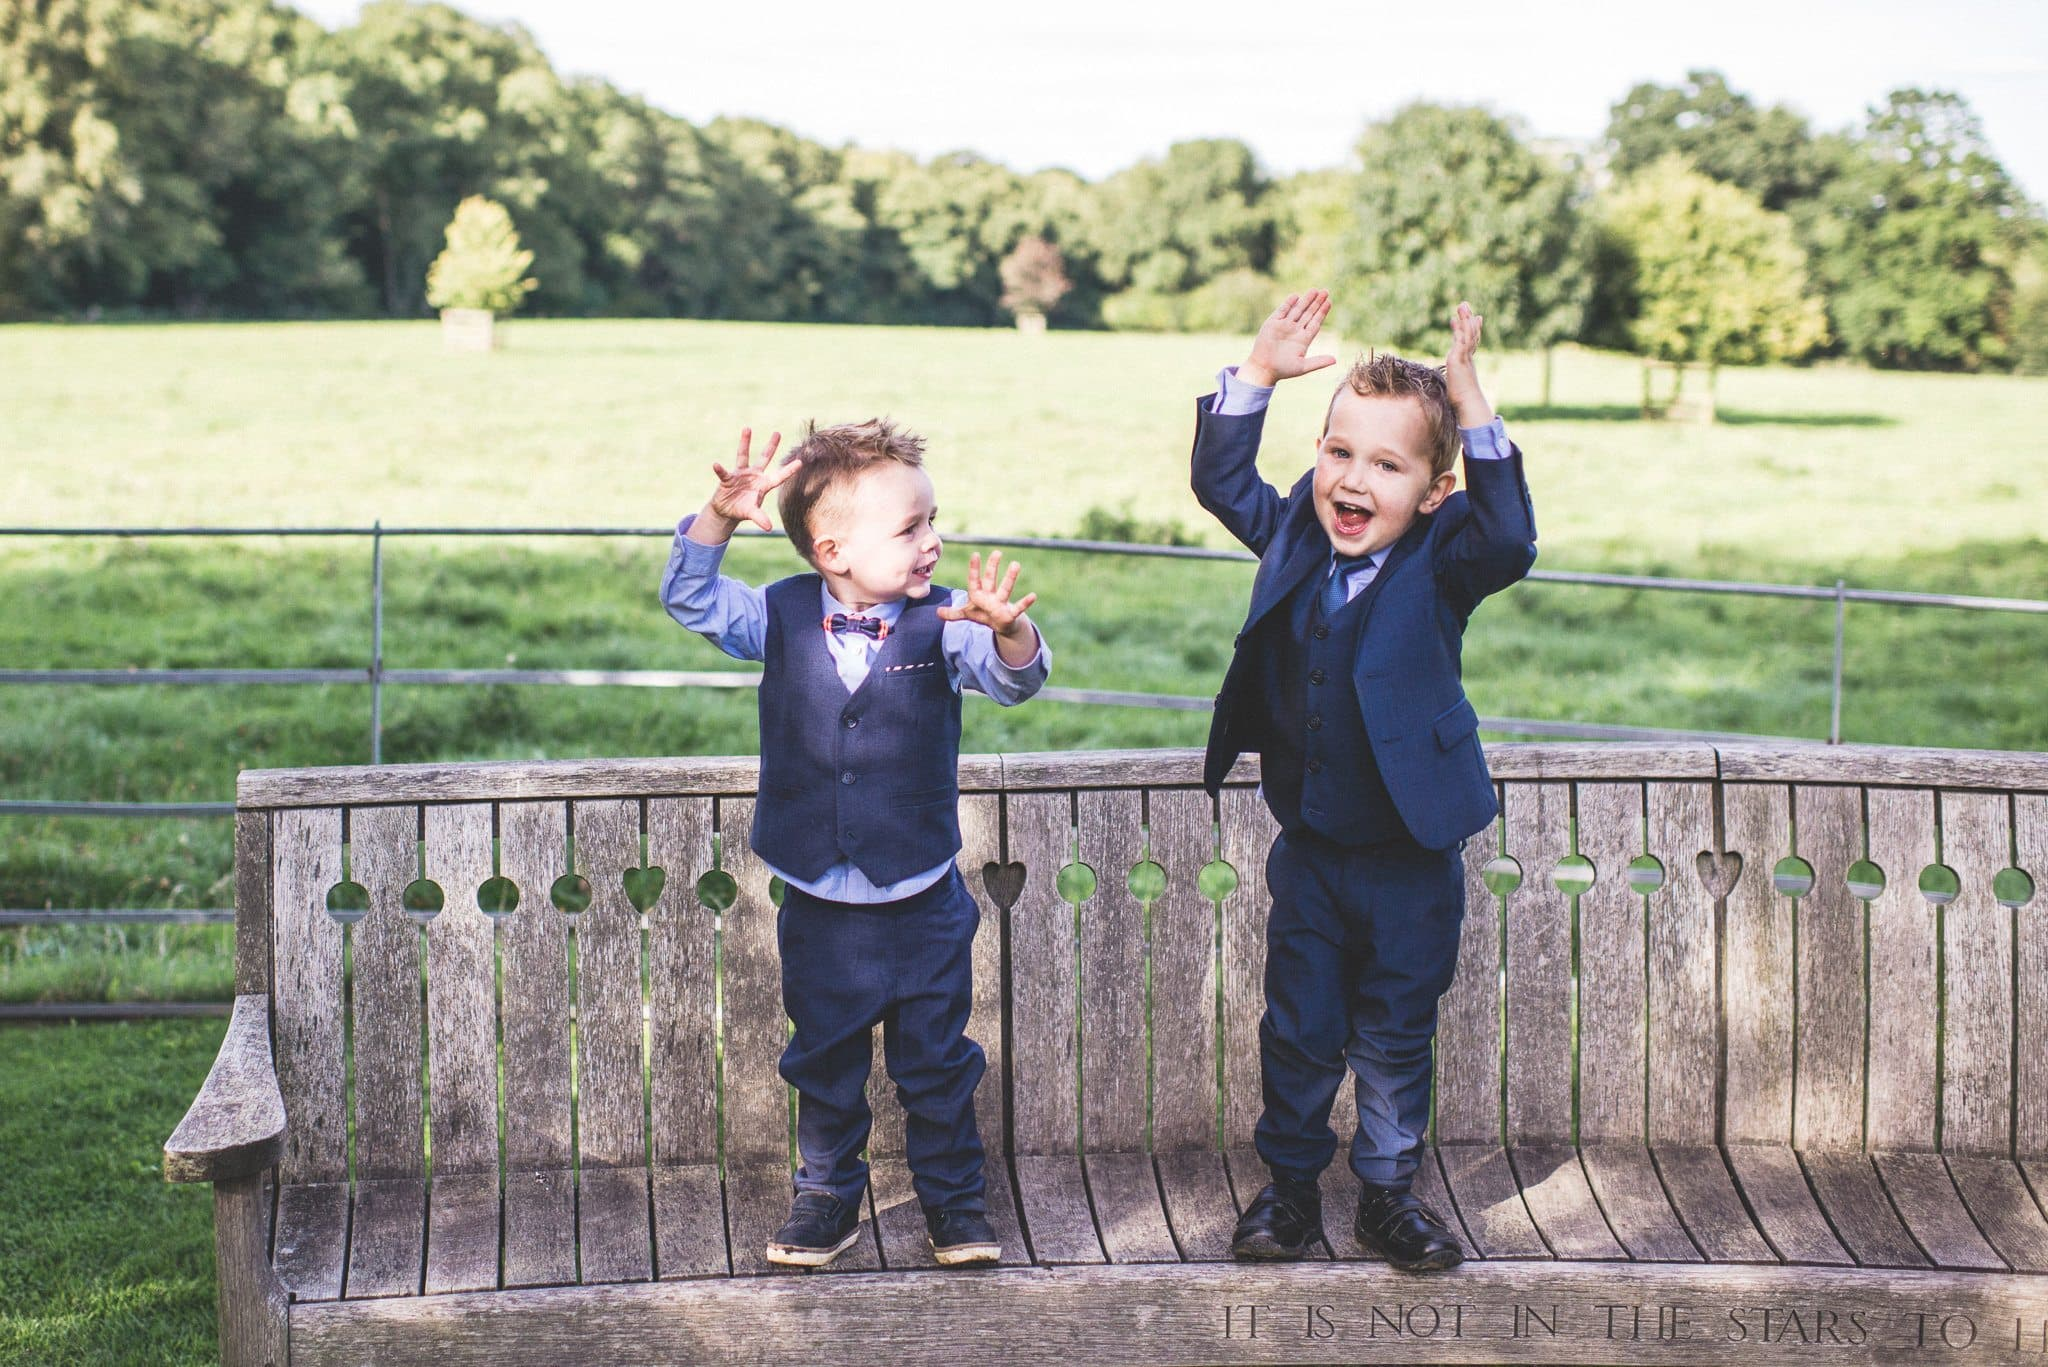 Two young boys looking v dapper in suits and waistcoats stand on a bench with their hands in the air.